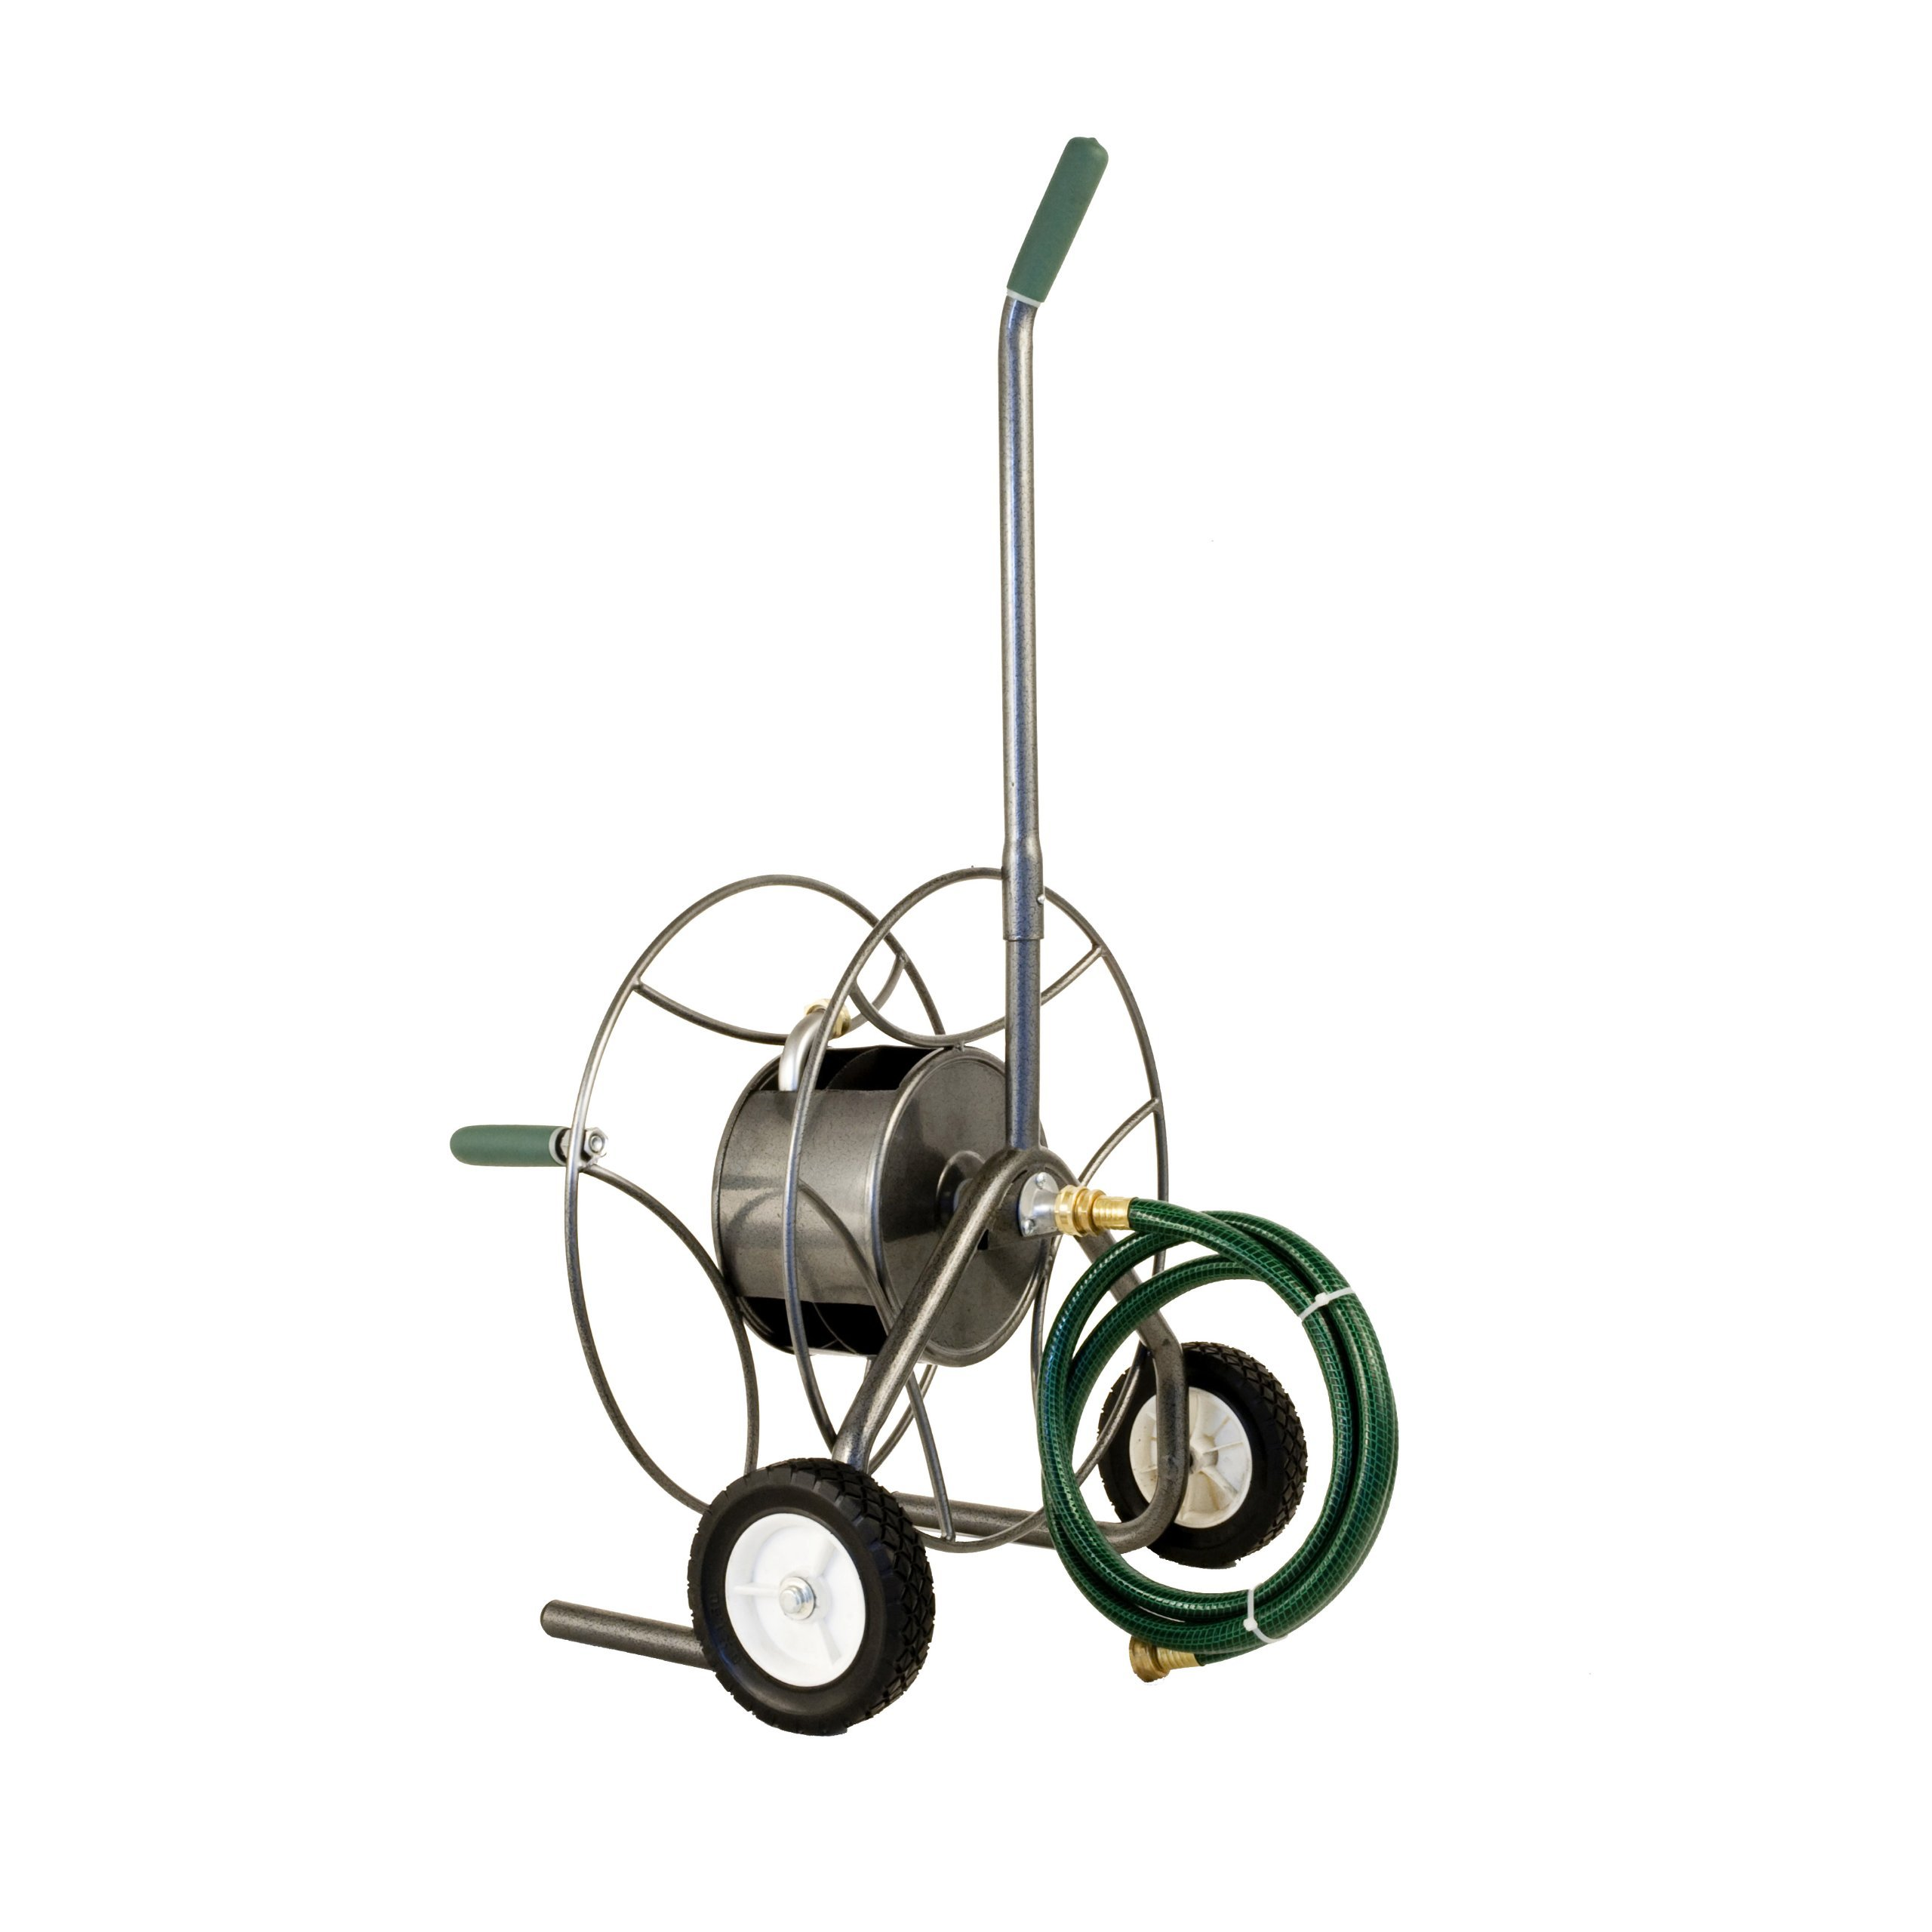 Yard Butler HTC-1 Compact Hose Reel Truck (Renewed)